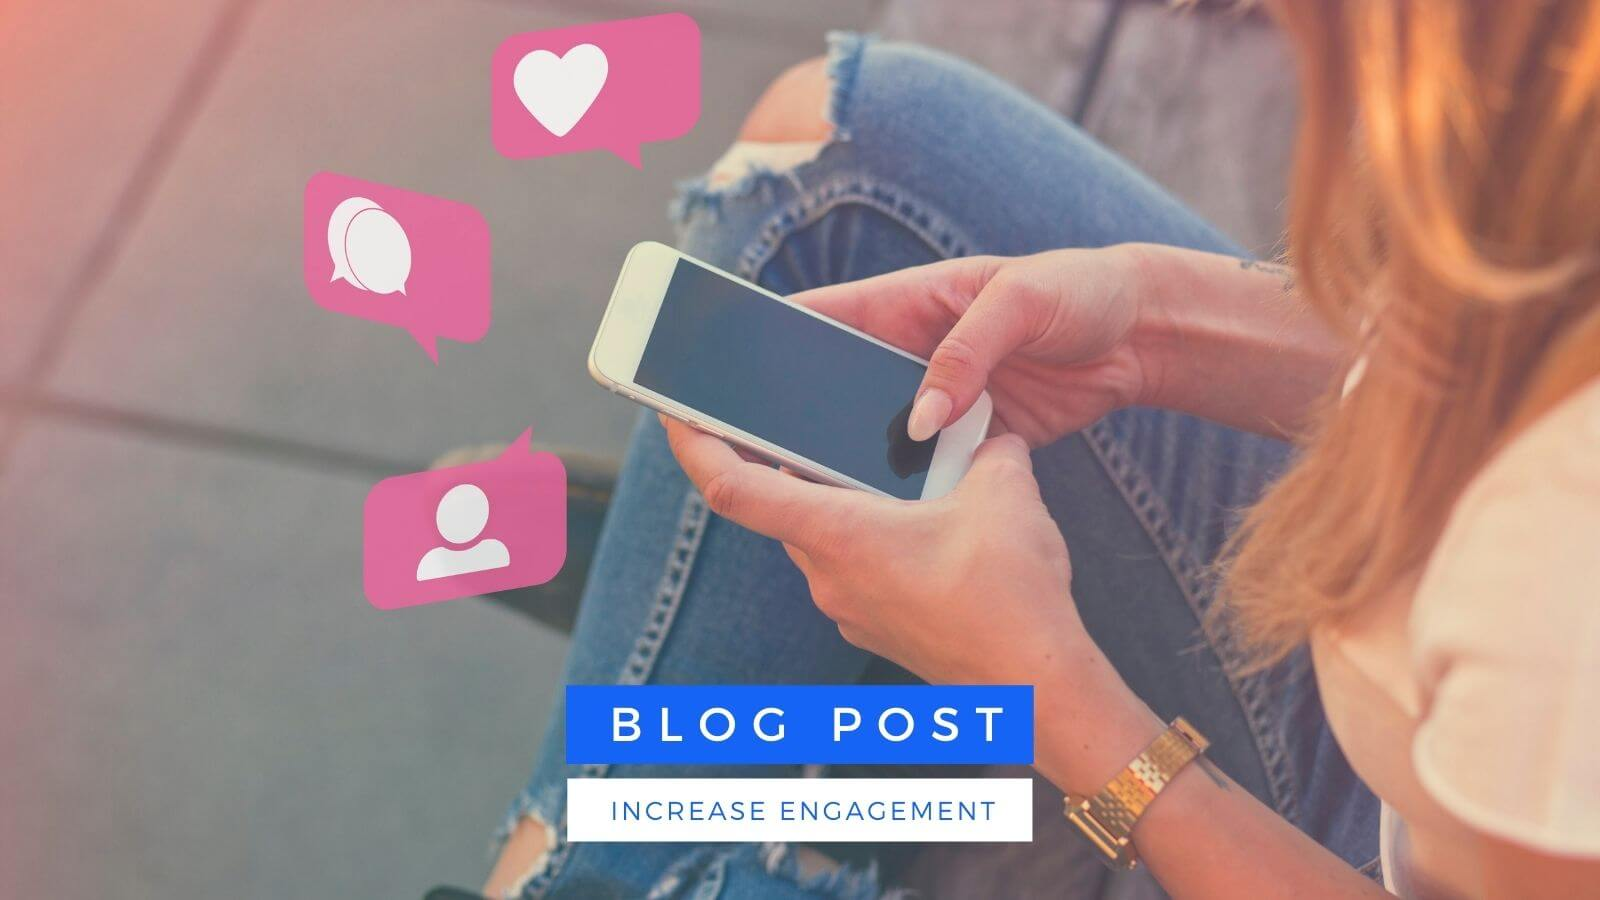 Create Content For Social Media